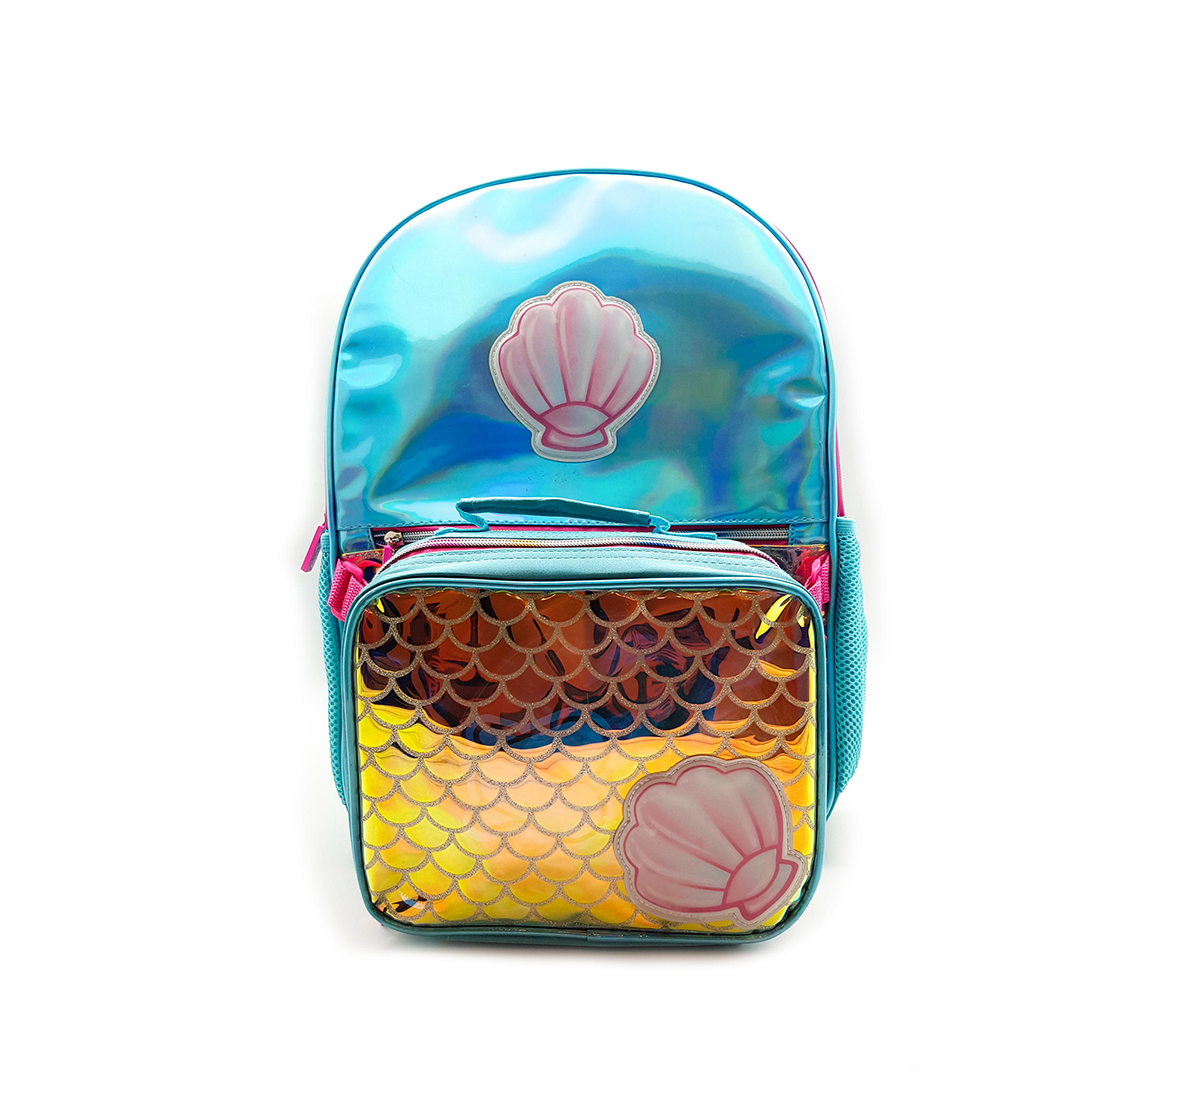 Hamster London | Hamster London Shiny Shell Backpack with Tiffin Bag for Girls age 3Y+ (Blue)